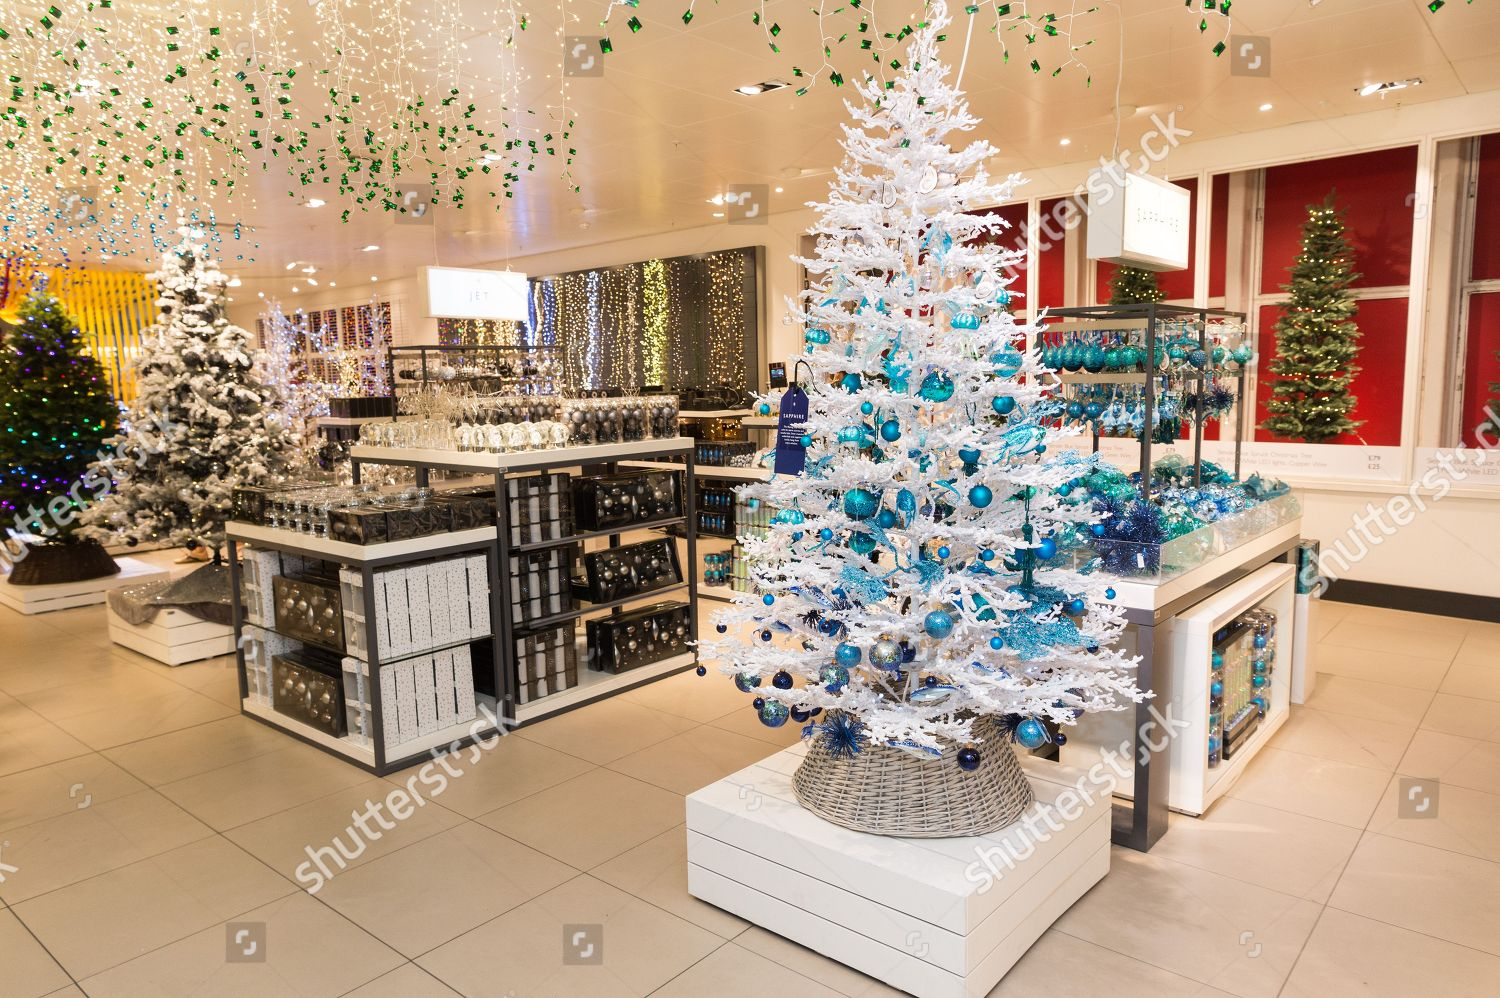 John Lewis Christmas Decorations.Christmas Decorations On Display Editorial Stock Photo